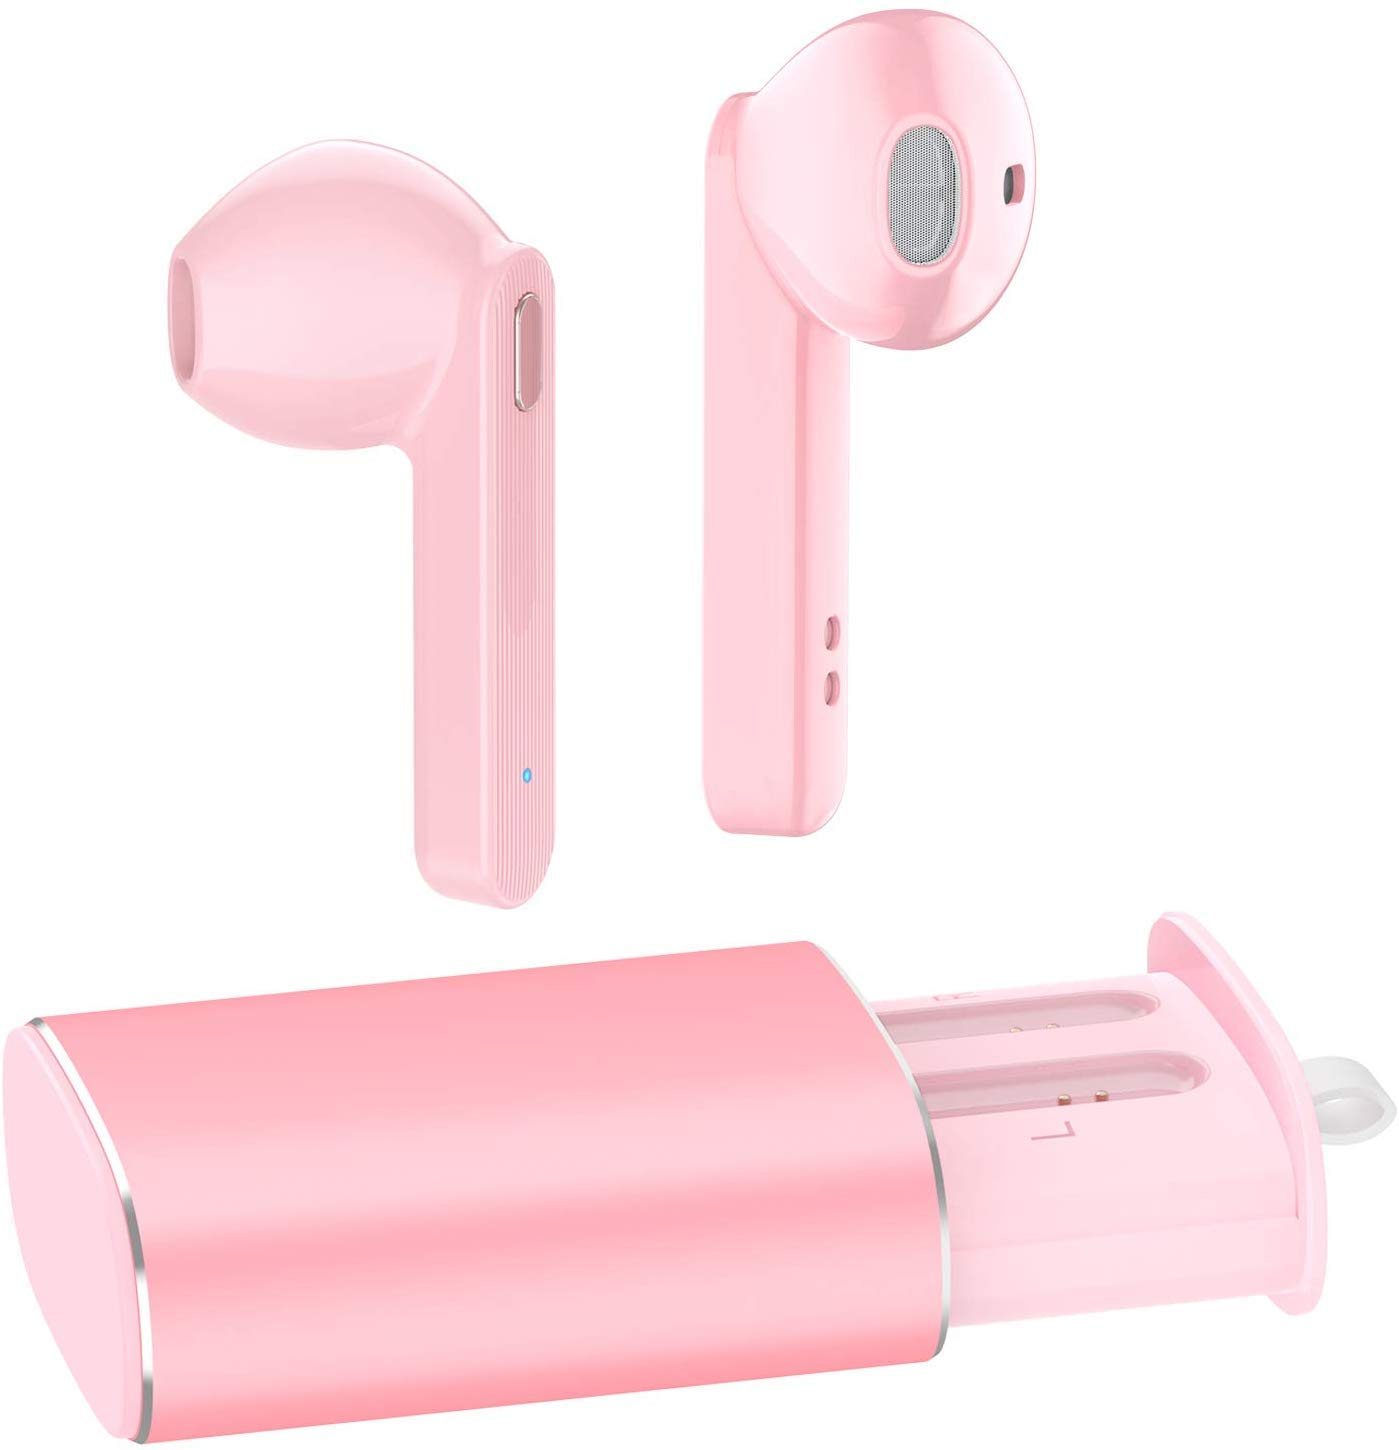 Wireless Earbuds, Bluetooth Earbuds 24 Hrs Playtime,IPX5 Waterproof Headphones with Wireless Charging Case, Bluetooth 5.0 HD Stereo Built-in Mic in-Ear Sports Earphones for (Pink) (Pink)